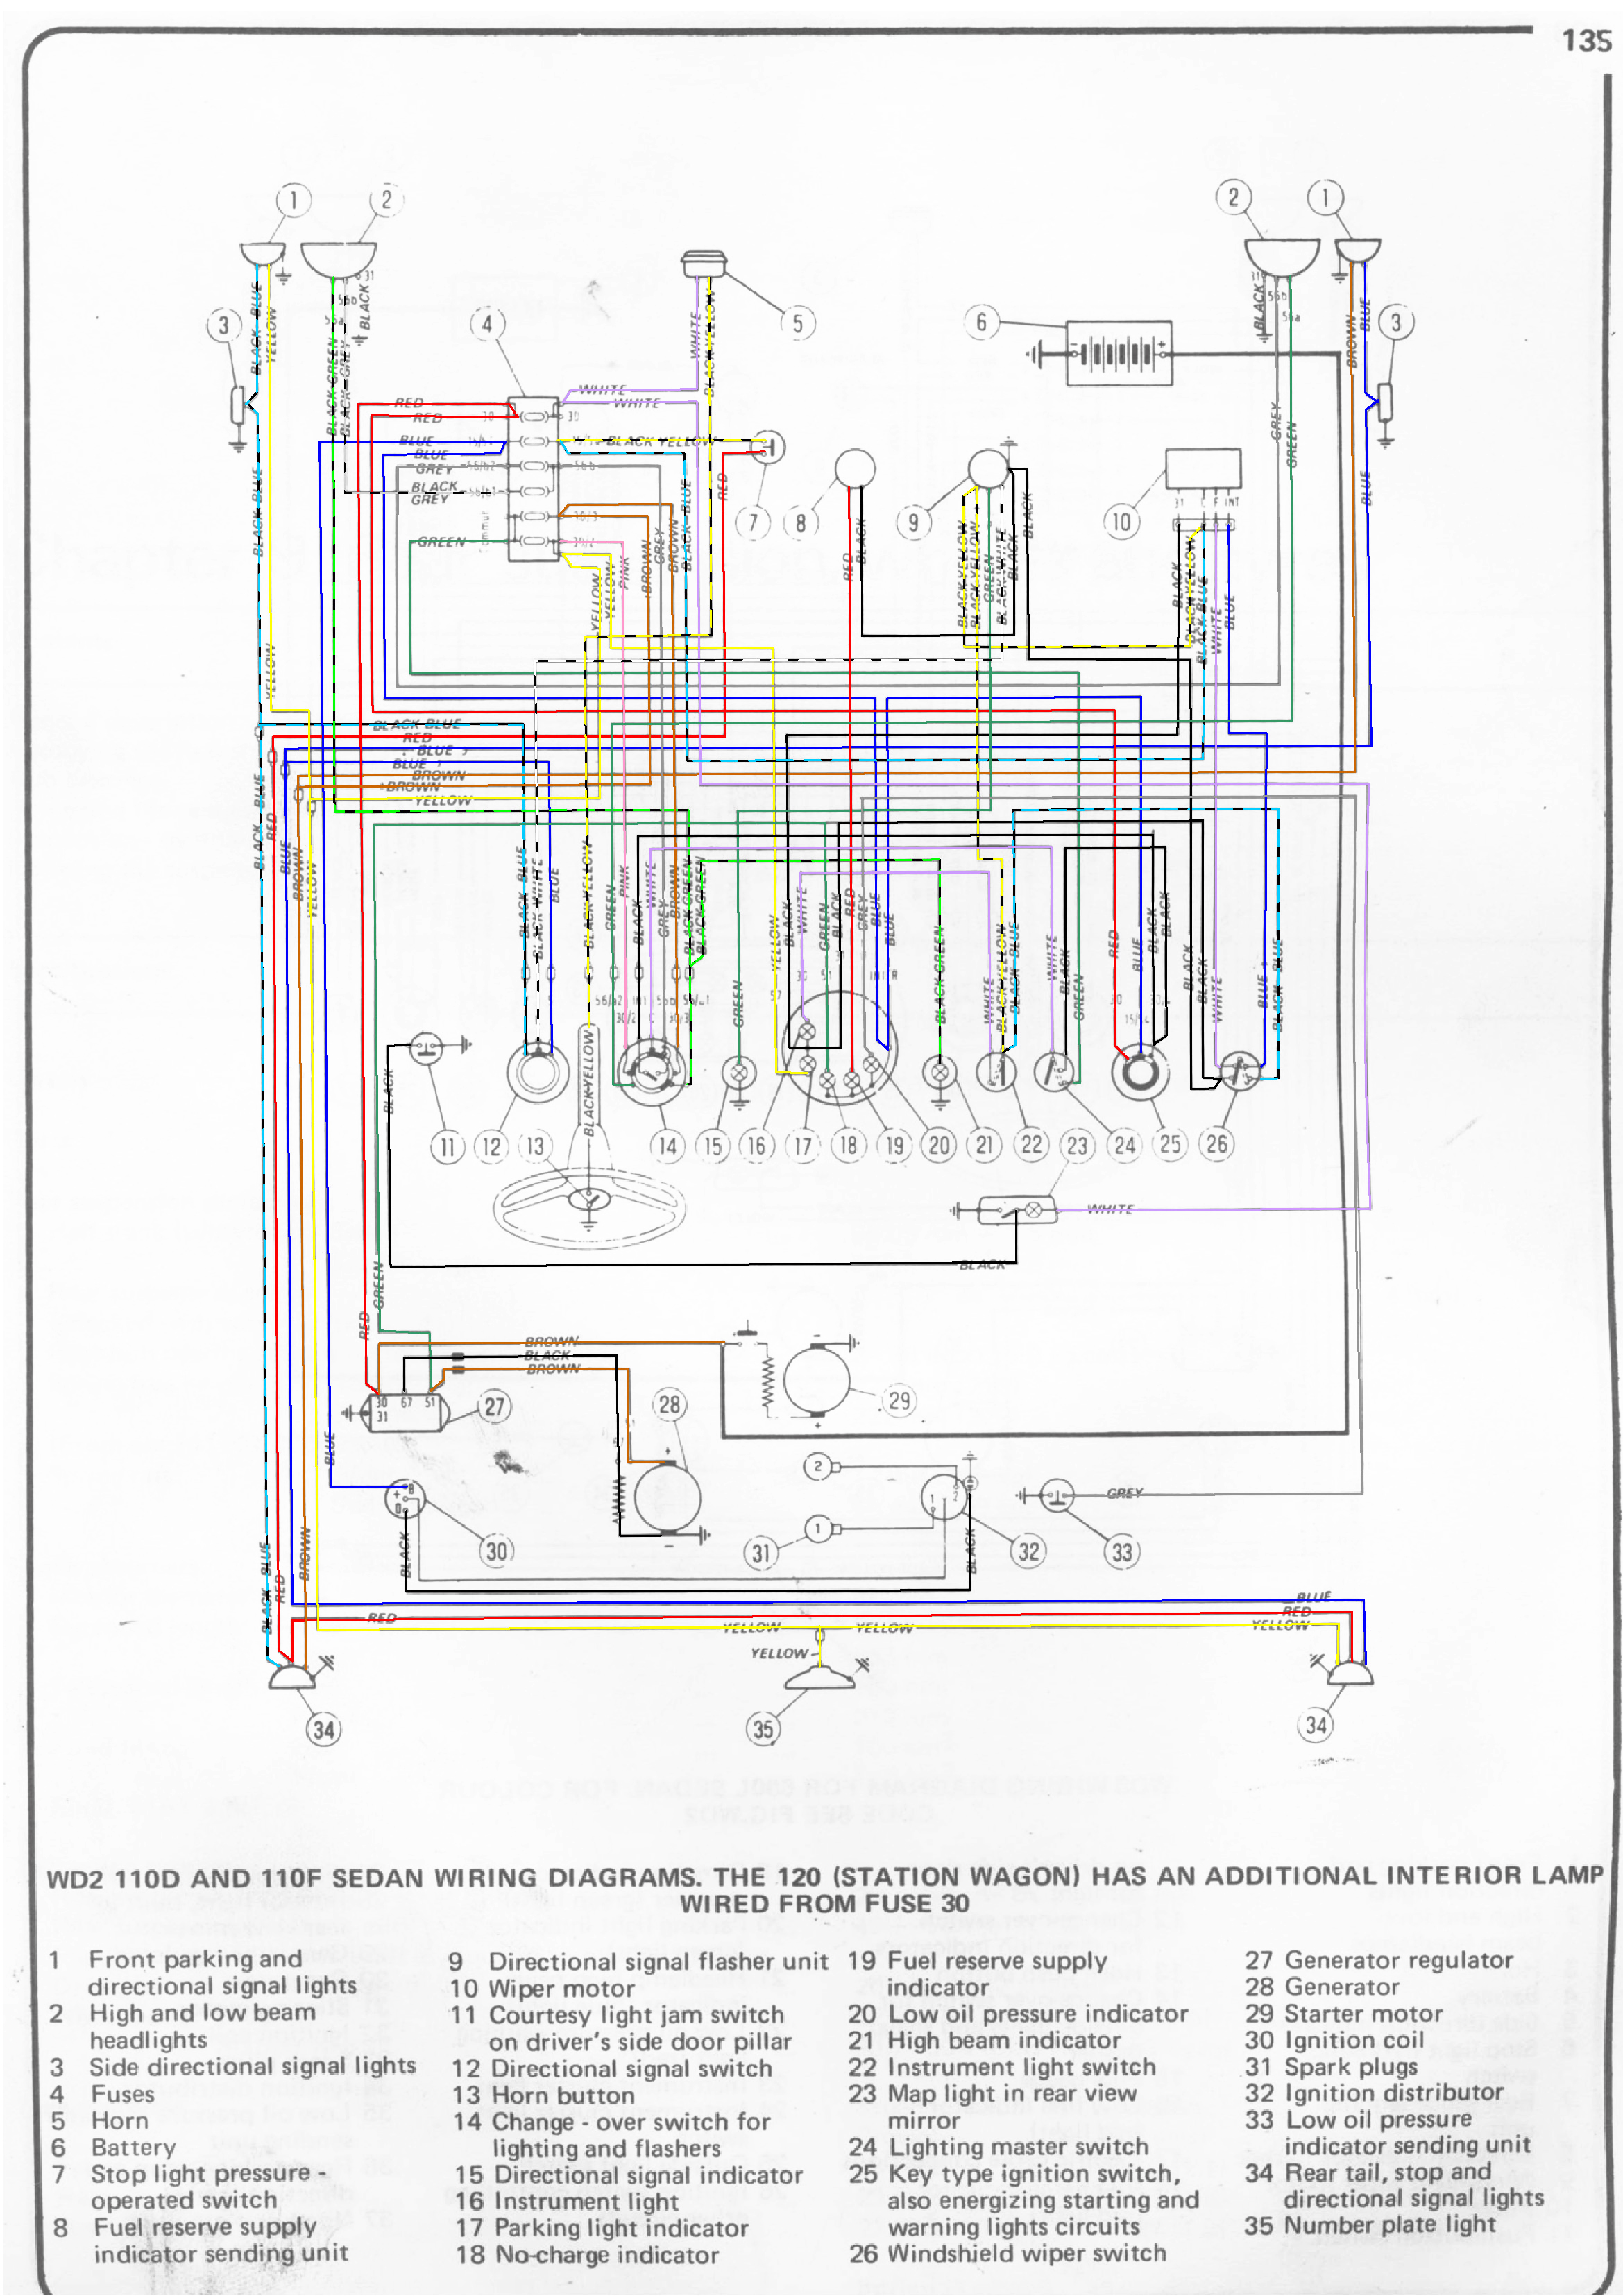 1975 fiat wiring diagram color wiring diagram rh blaknwyt co fiat seicento sporting wiring diagram fiat seicento wiring diagram